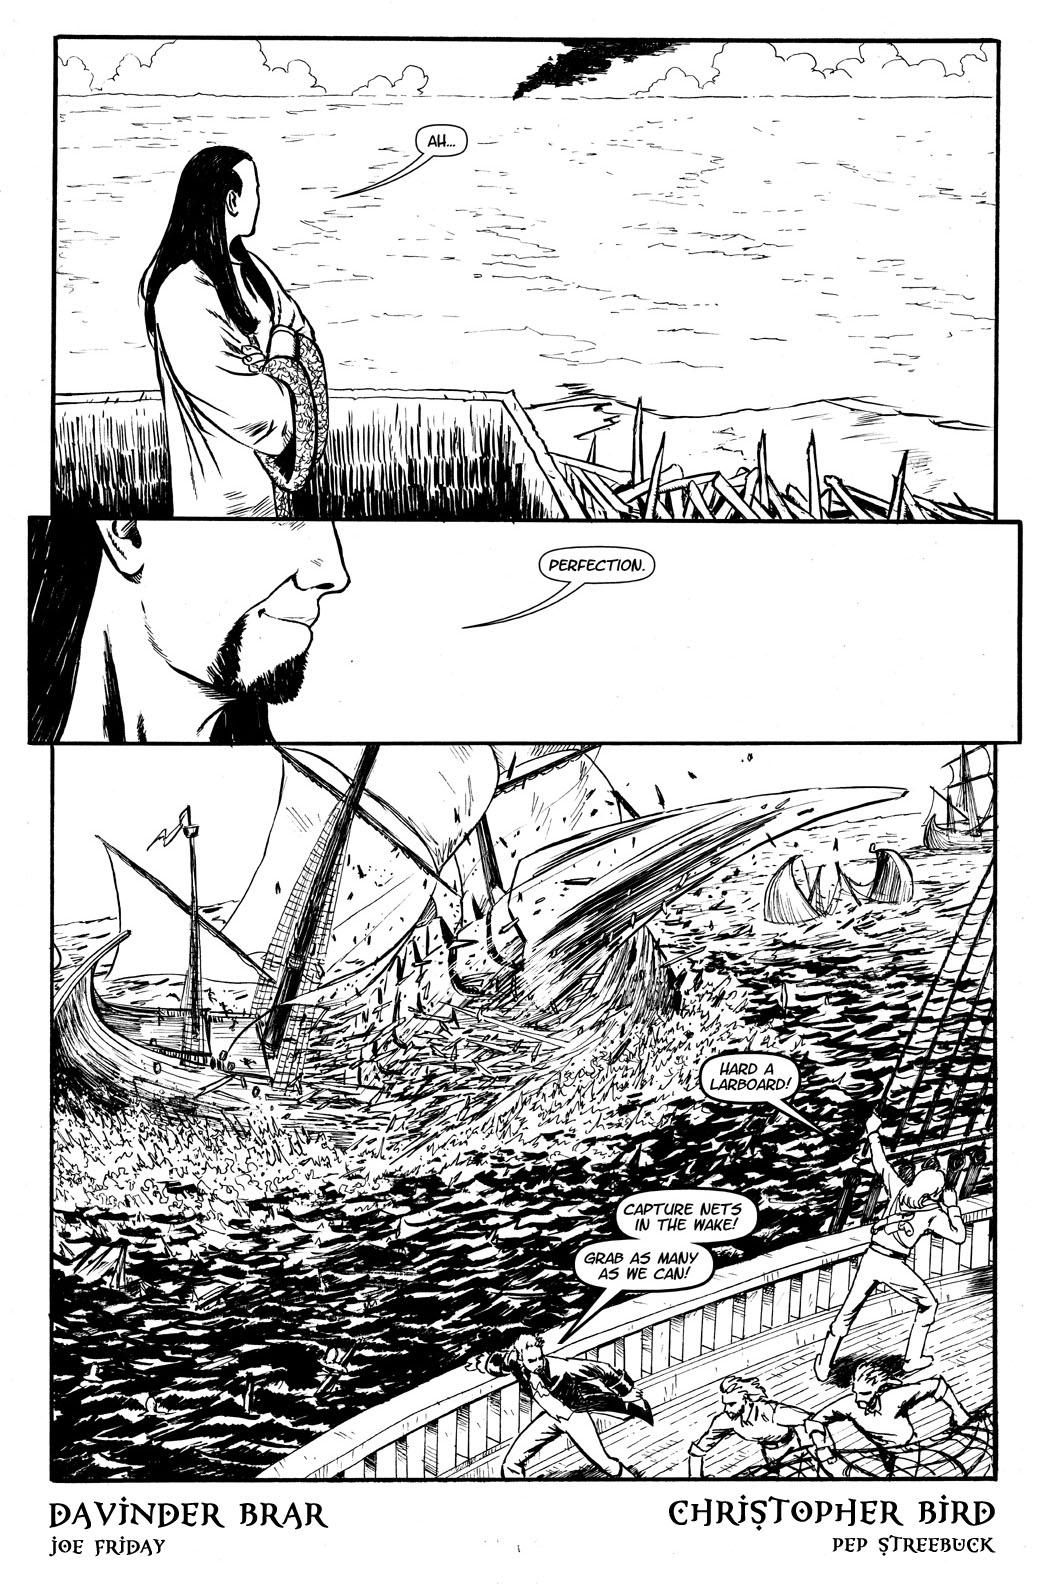 Book Eight, Page Five